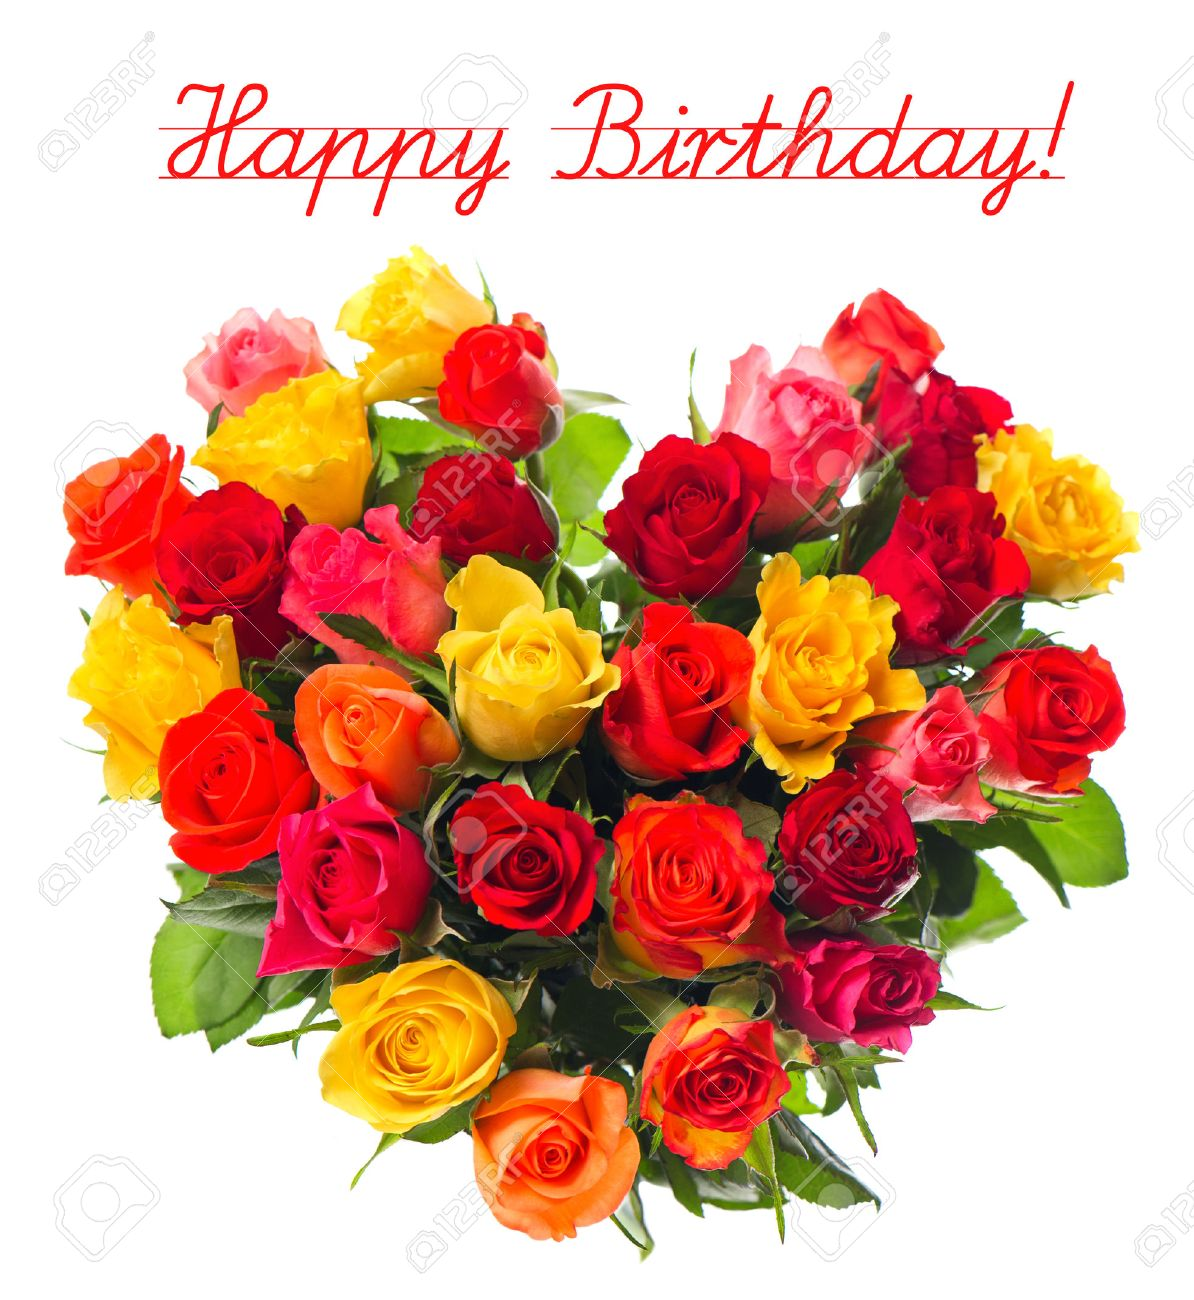 Happy Birthday Flowers Images Free